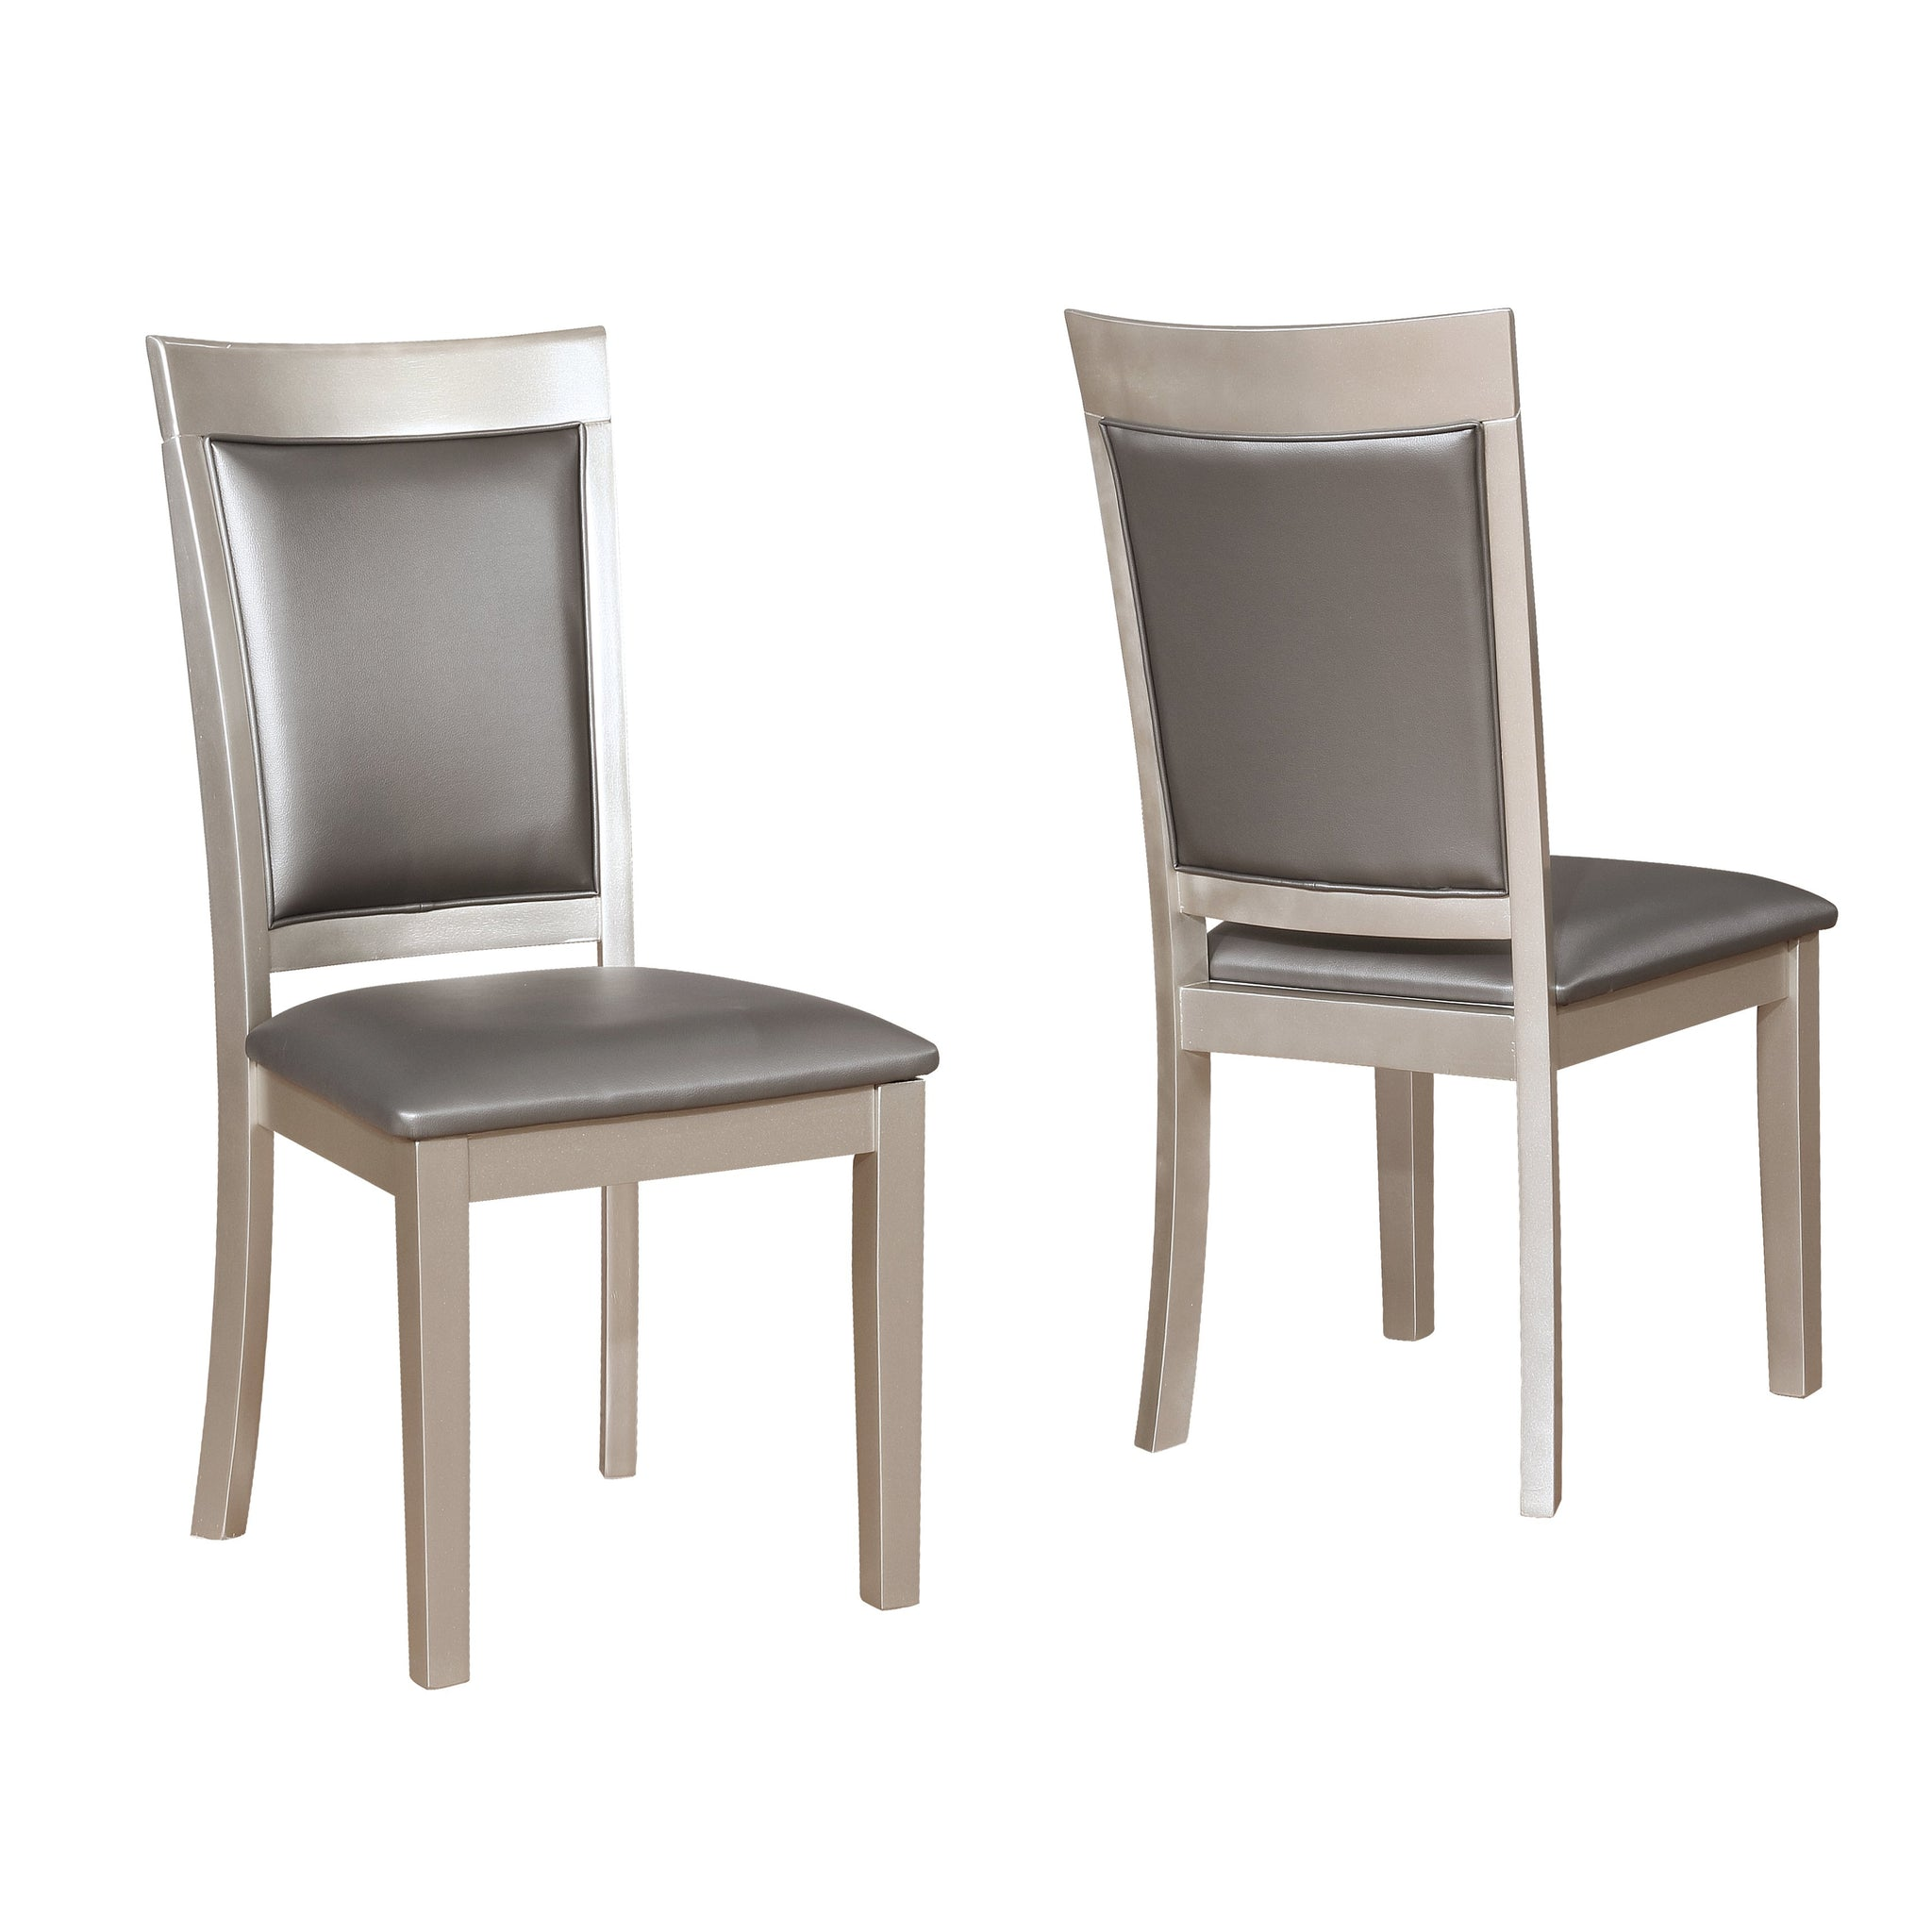 Avignor Contemporary Simplicity Dining Chair, Set of 2